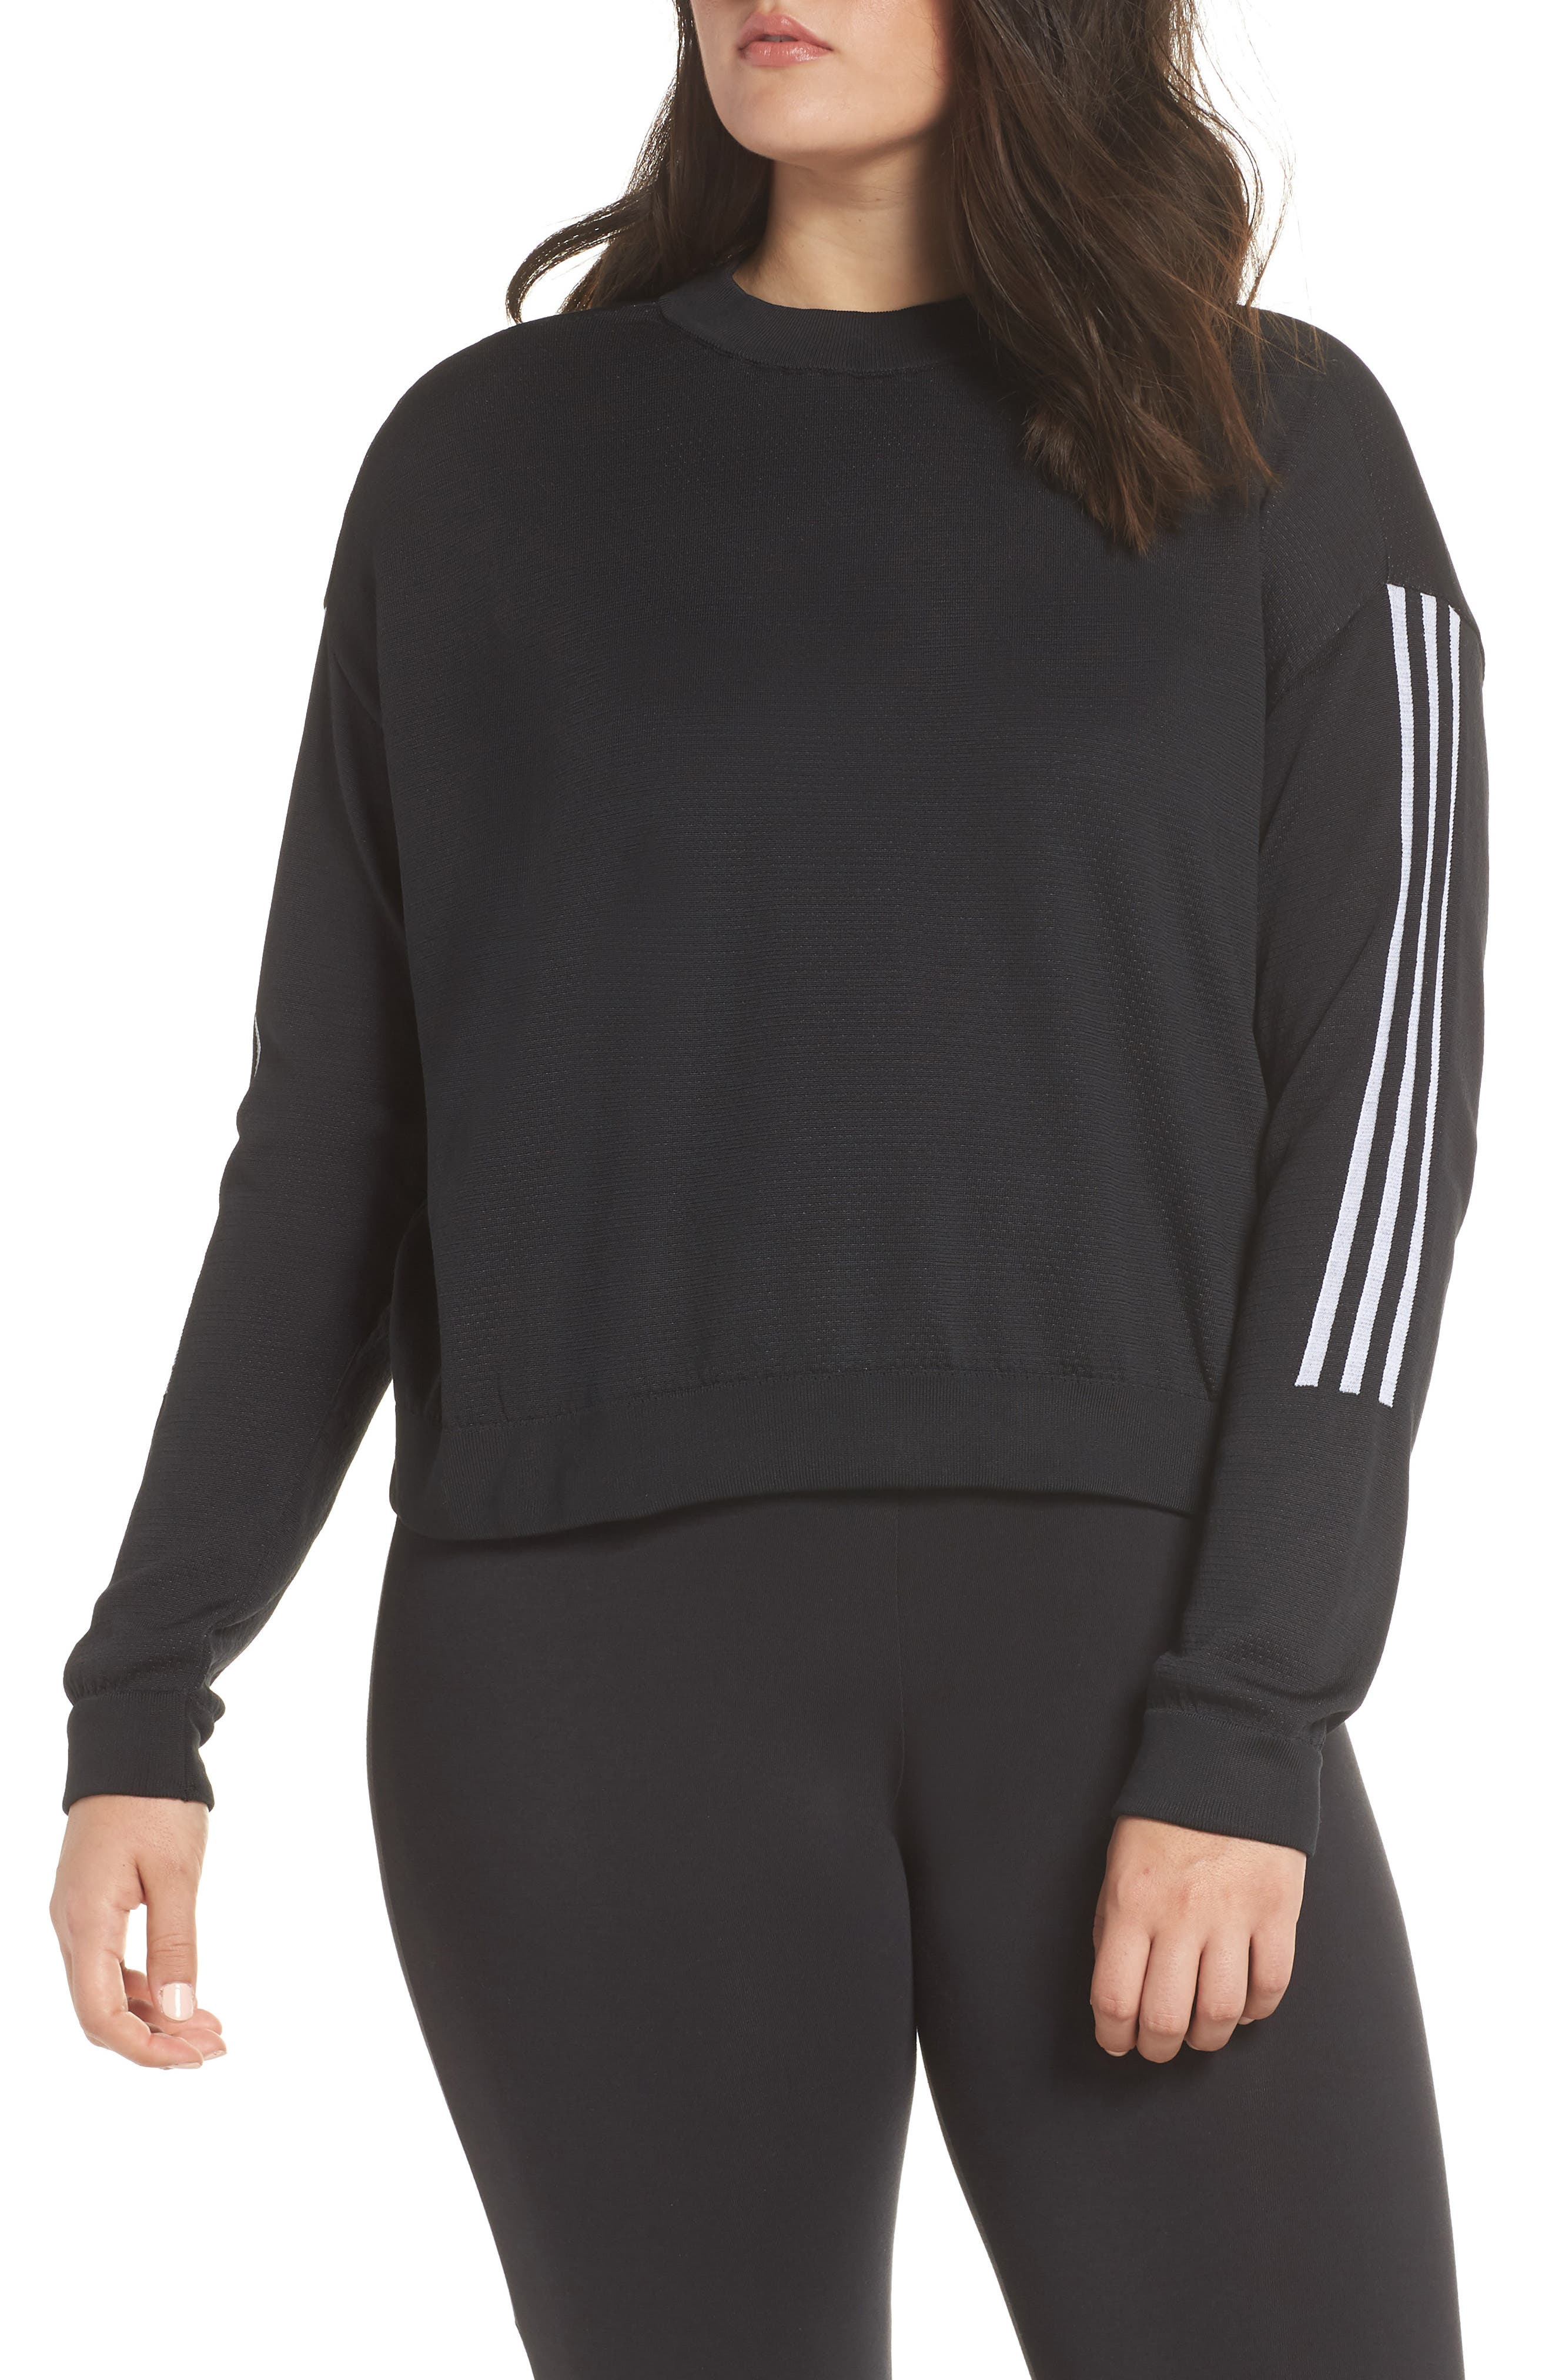 ID Knit Sweatshirt,                             Alternate thumbnail 2, color,                             001